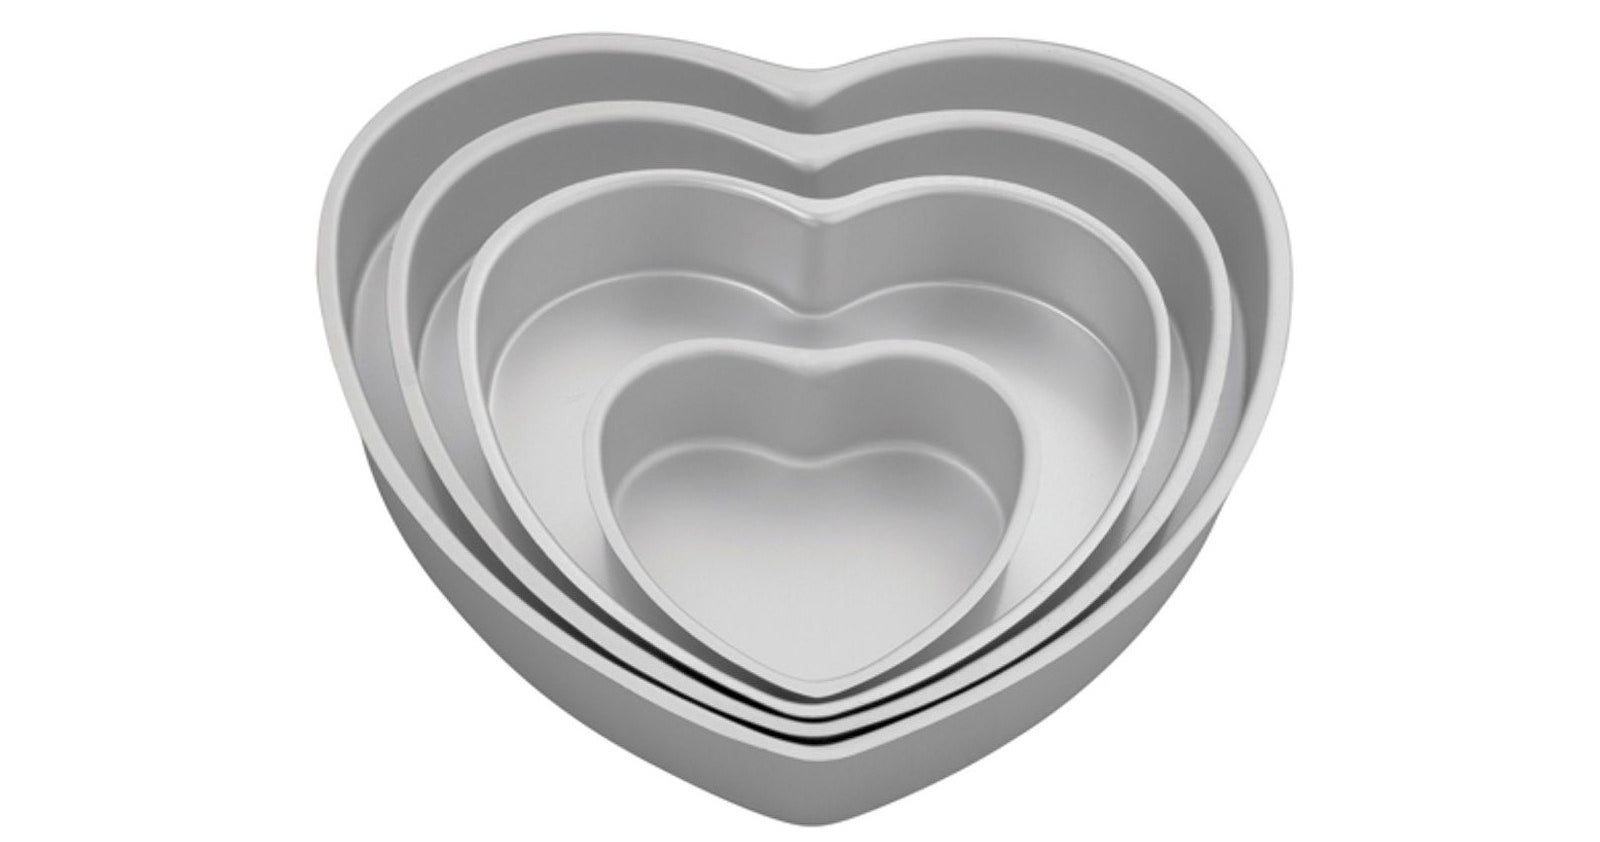 A four-piece heart pan set constructed from extra-heavy-gauge aluminum for pro-level results.